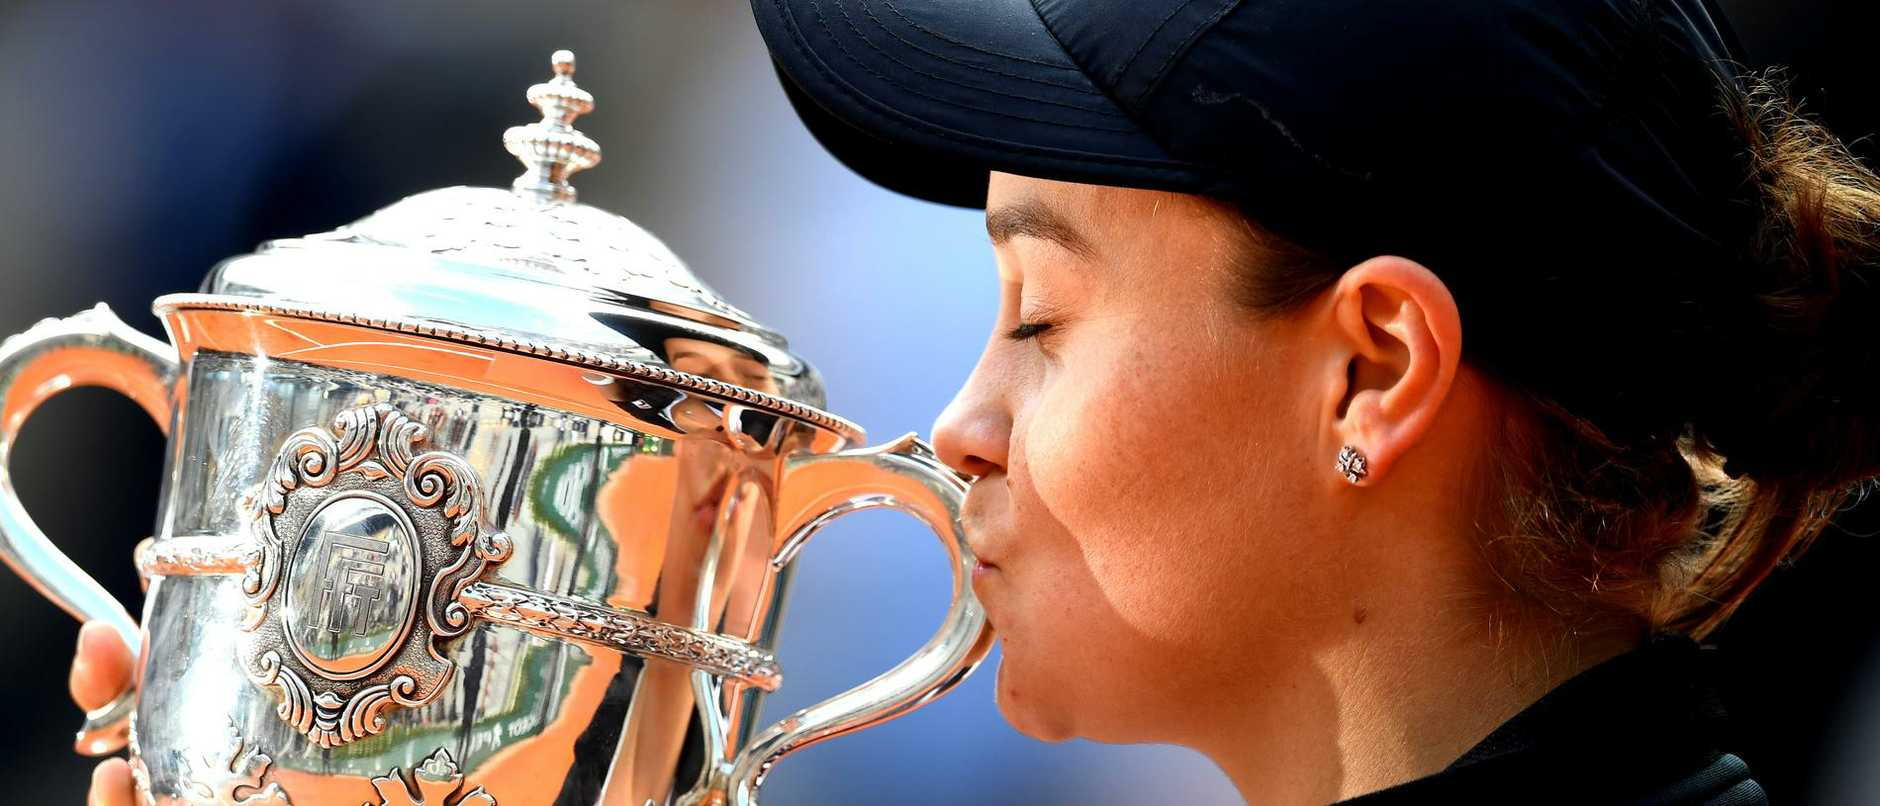 After several unsuccessful attempts to get her trainer in to Brisbane world number one Ash Barty says she had no choice but to pull out of the French Open.